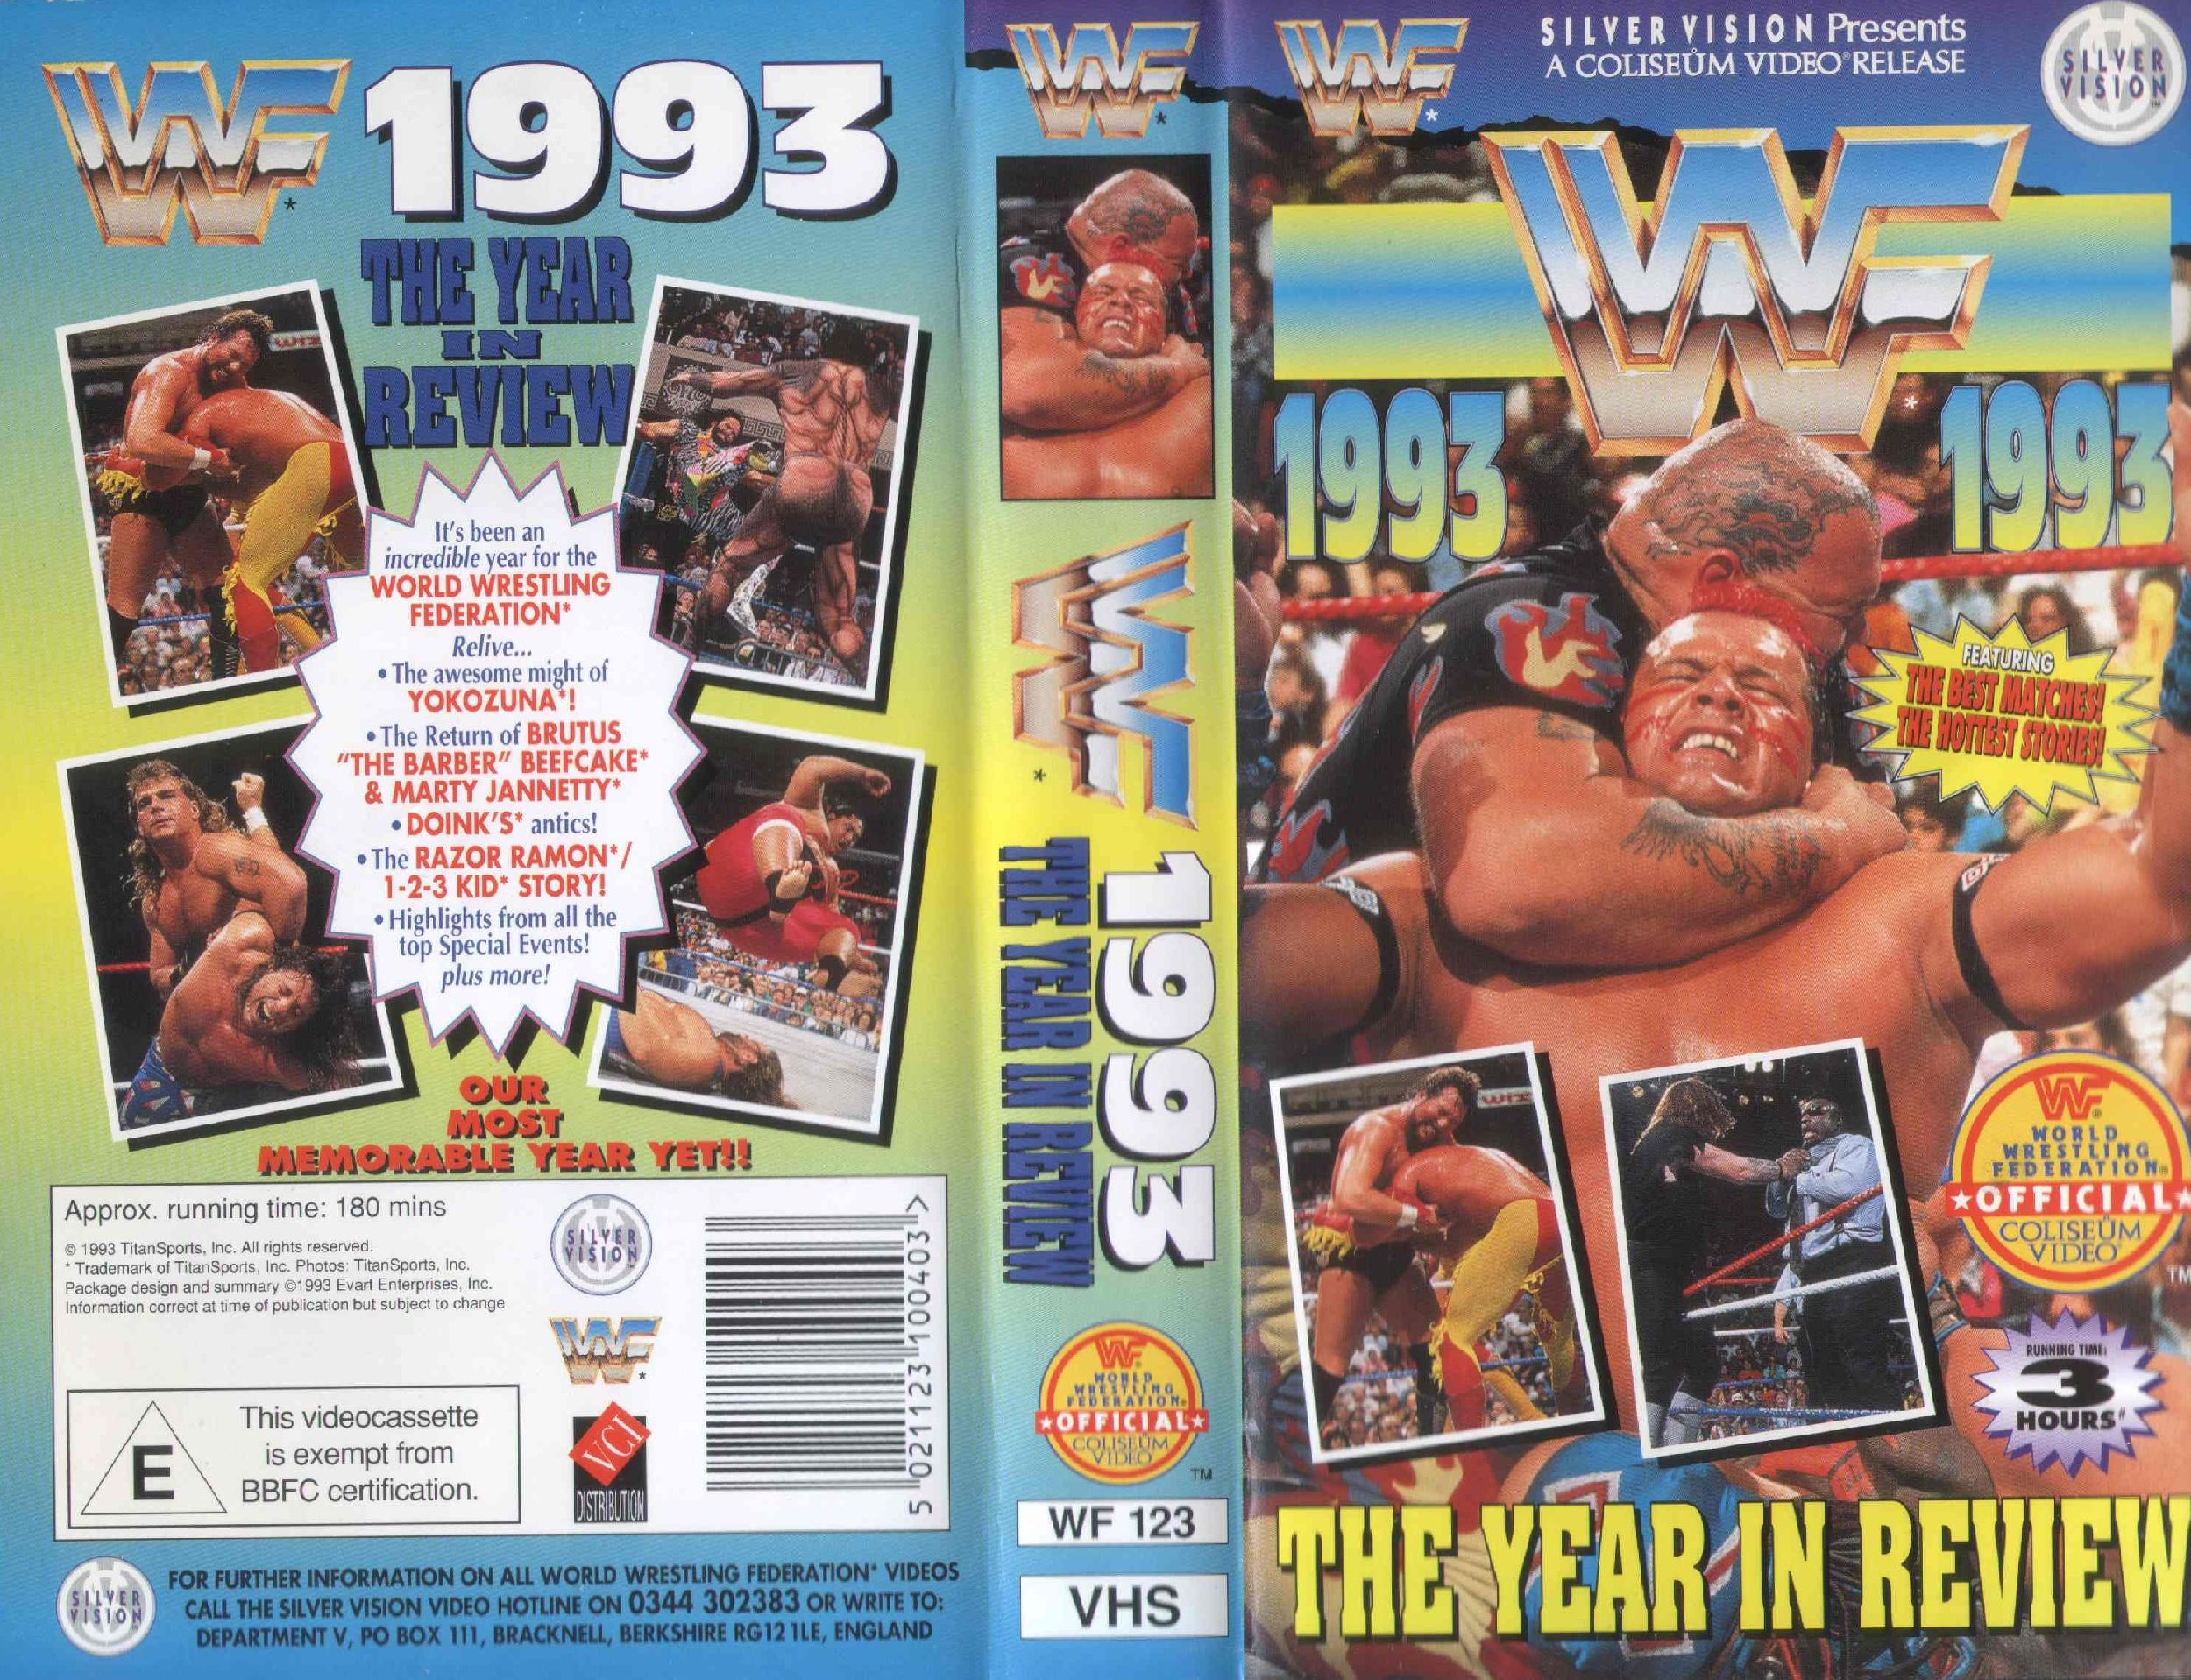 WWF_1993_Year_in_Review_(WF123)_-_Cover